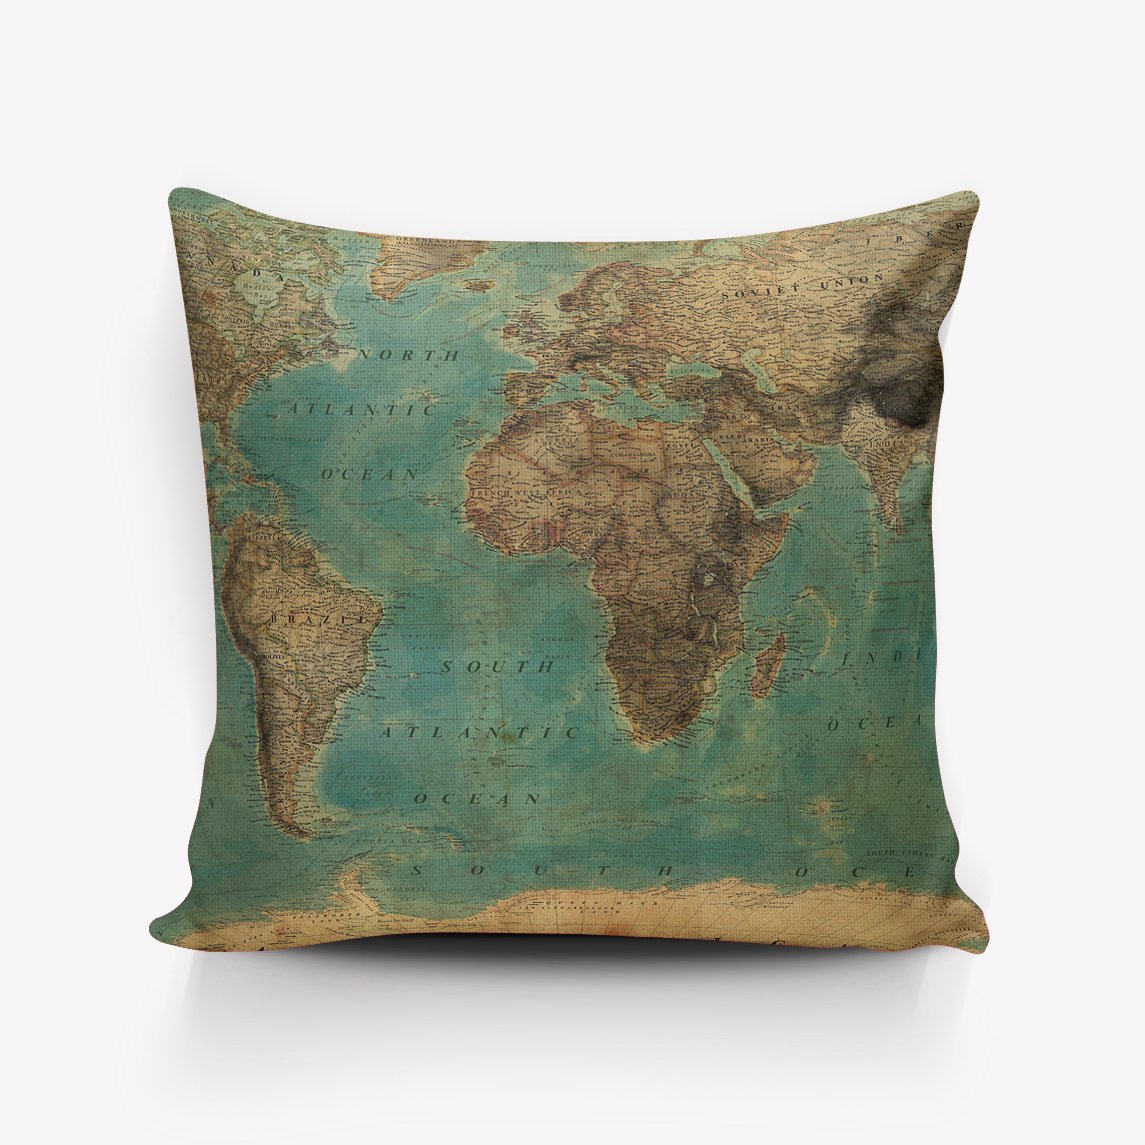 URDER Throw Pillowcase Covers/Euro Sham/Cushion Sham with Zipper, Luxury Linen Square Pillow Cases for Sofa/Bed/Chair Decor, Vintage World Map Route Green - 20''x20''